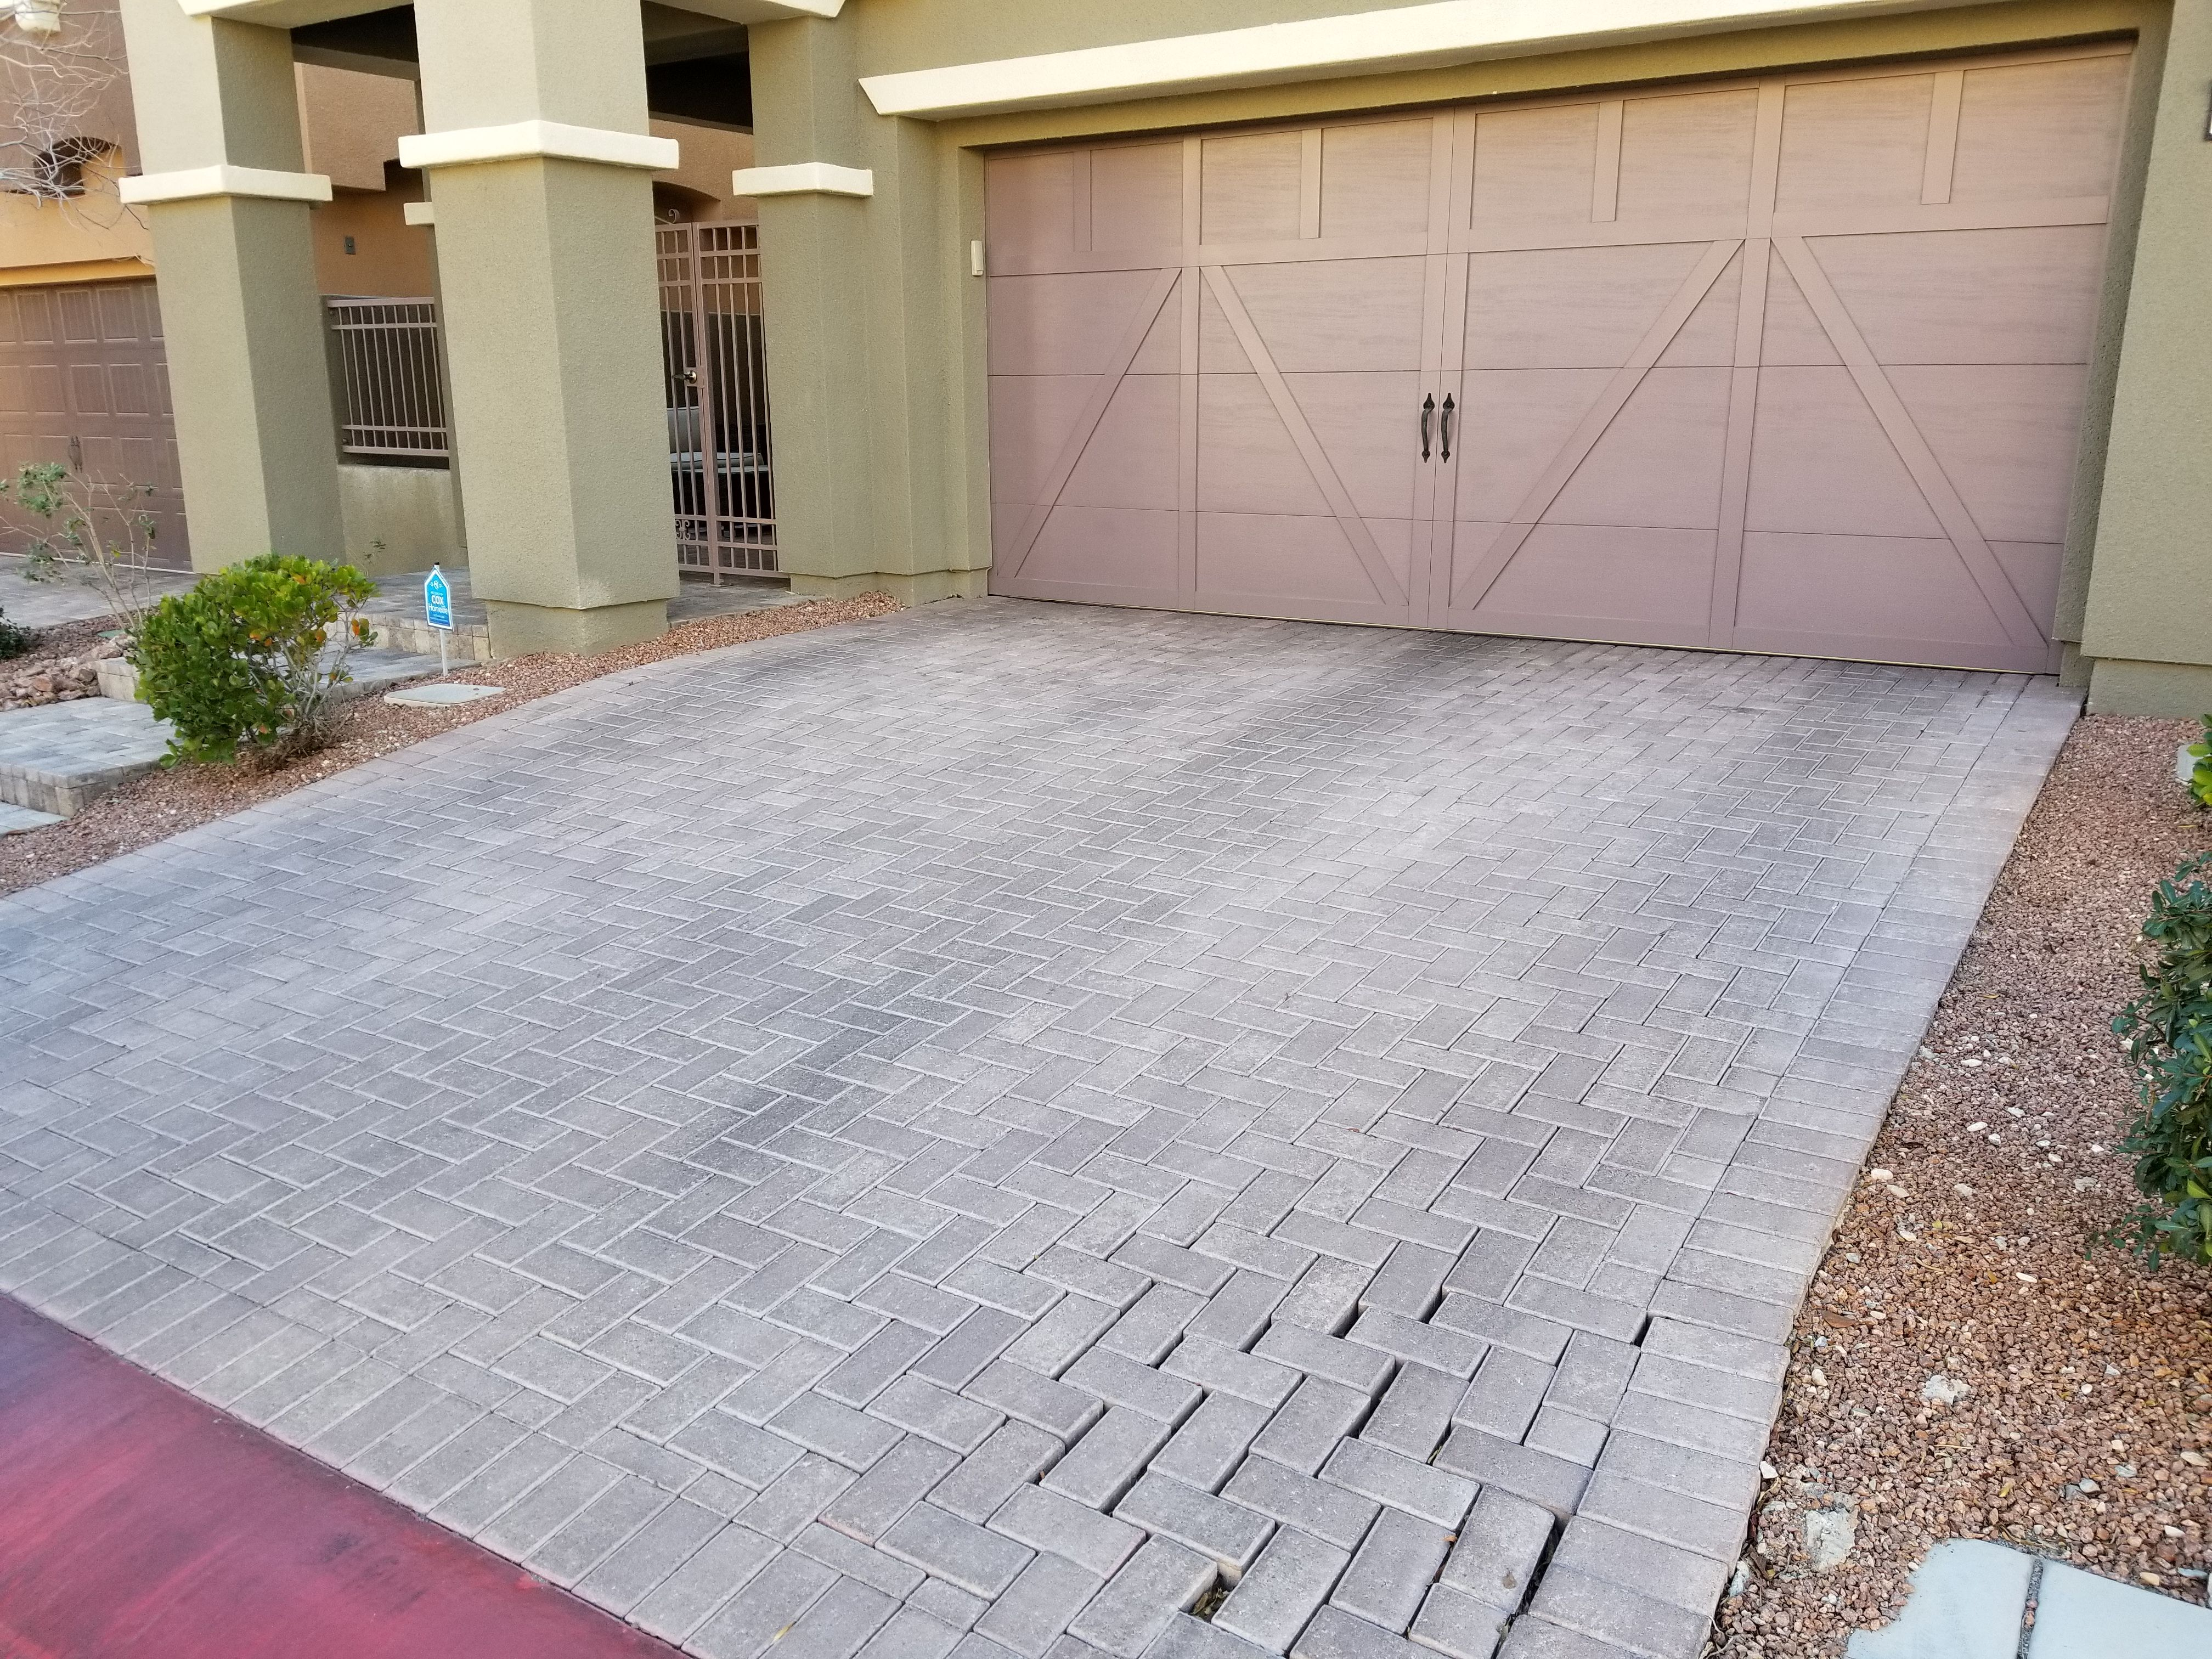 Sometimes a driveway can start to erode and lose its